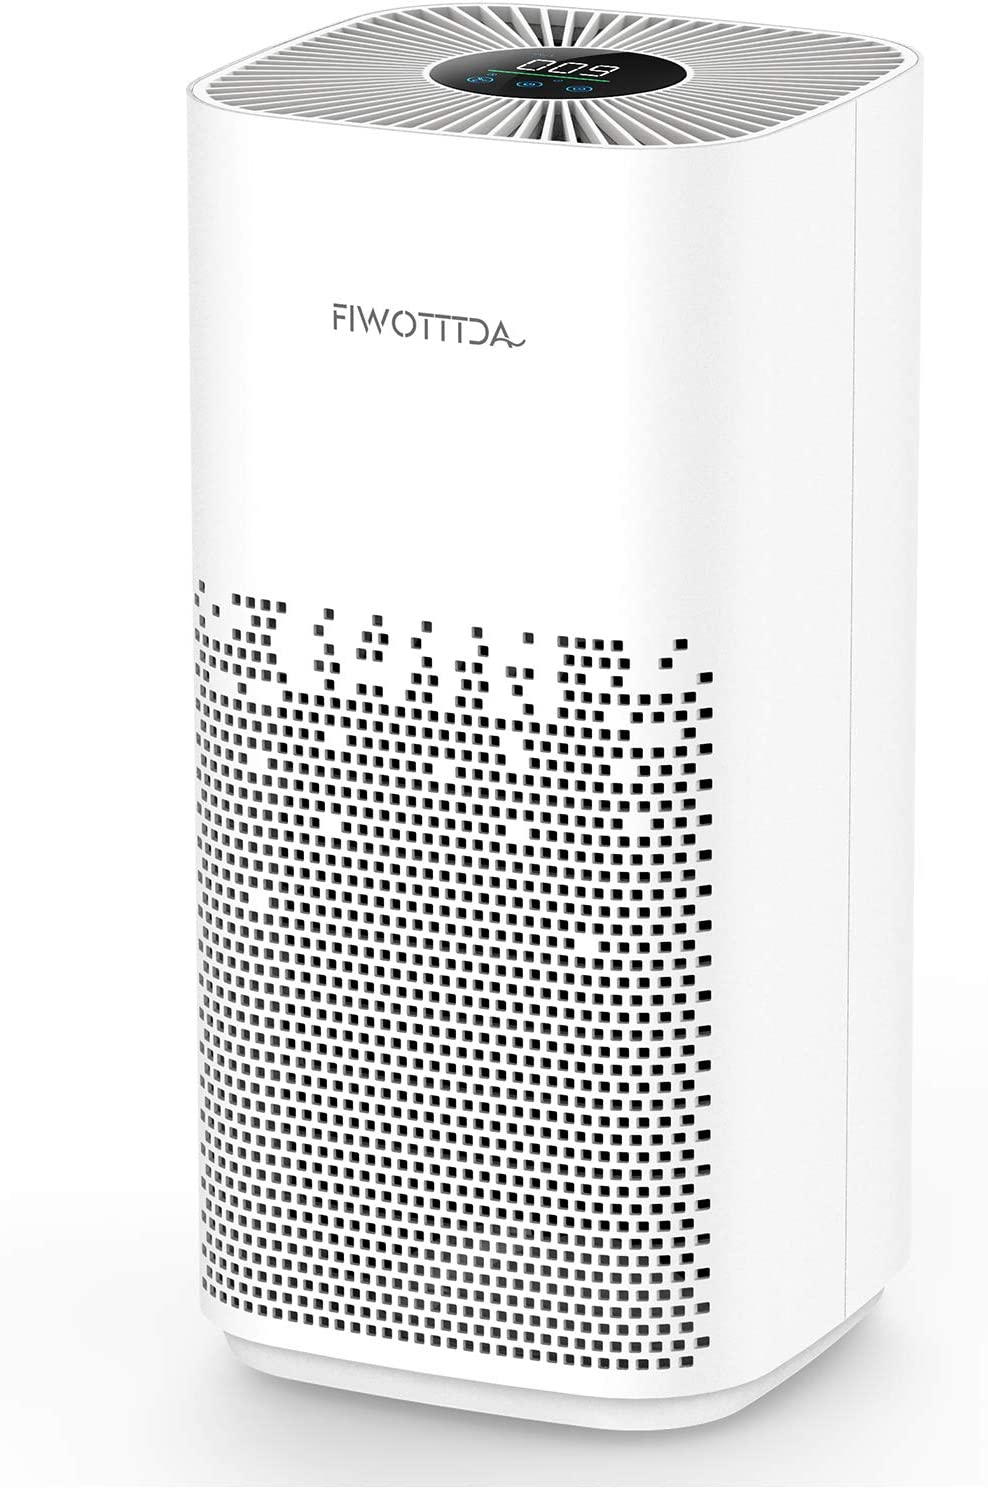 FIWOTTTDA Air Purifier for Home Large Room Allergies and Pets Hair Smokers in Bedroom, 1540 Sq Ft Coverage, H13 True HEPA Filter, Remove 99.97% Dust Smoke Pollen, White